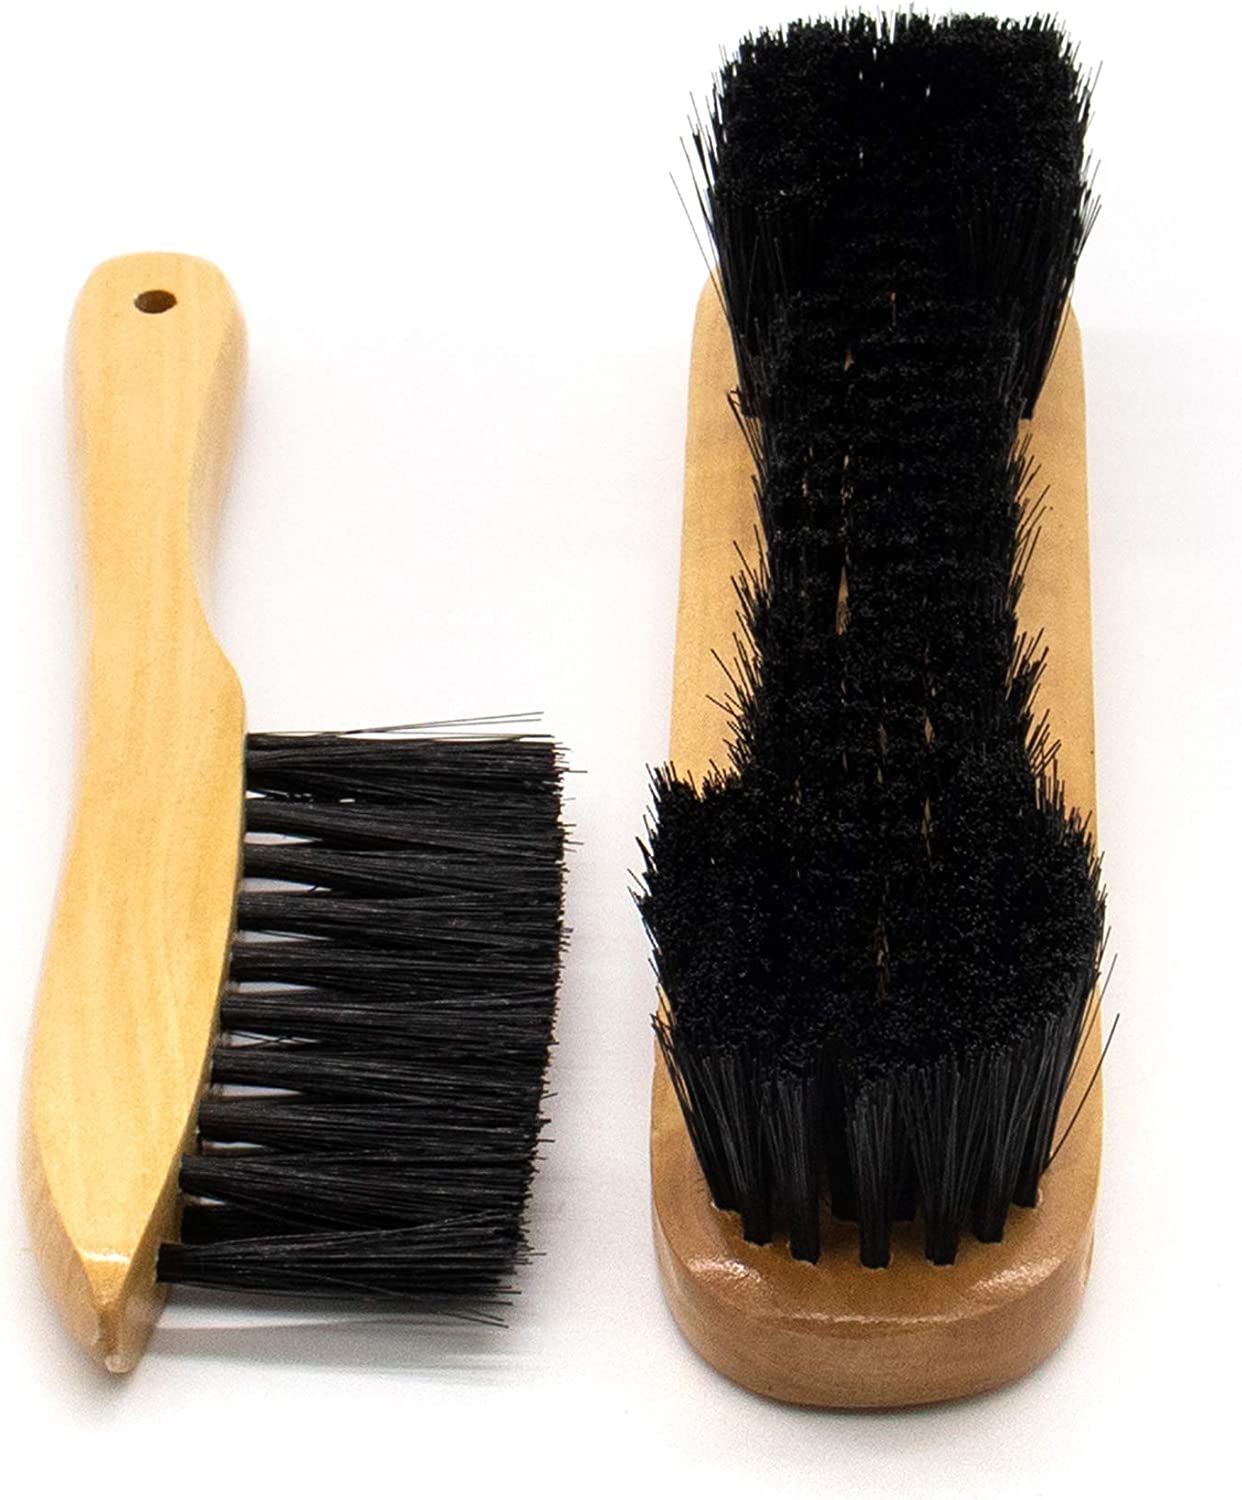 Set of 3 Billiards Pool Table and Rail Brush Set with Billiard Cue Shaft Slicker Cloth Cleaner AUEAR